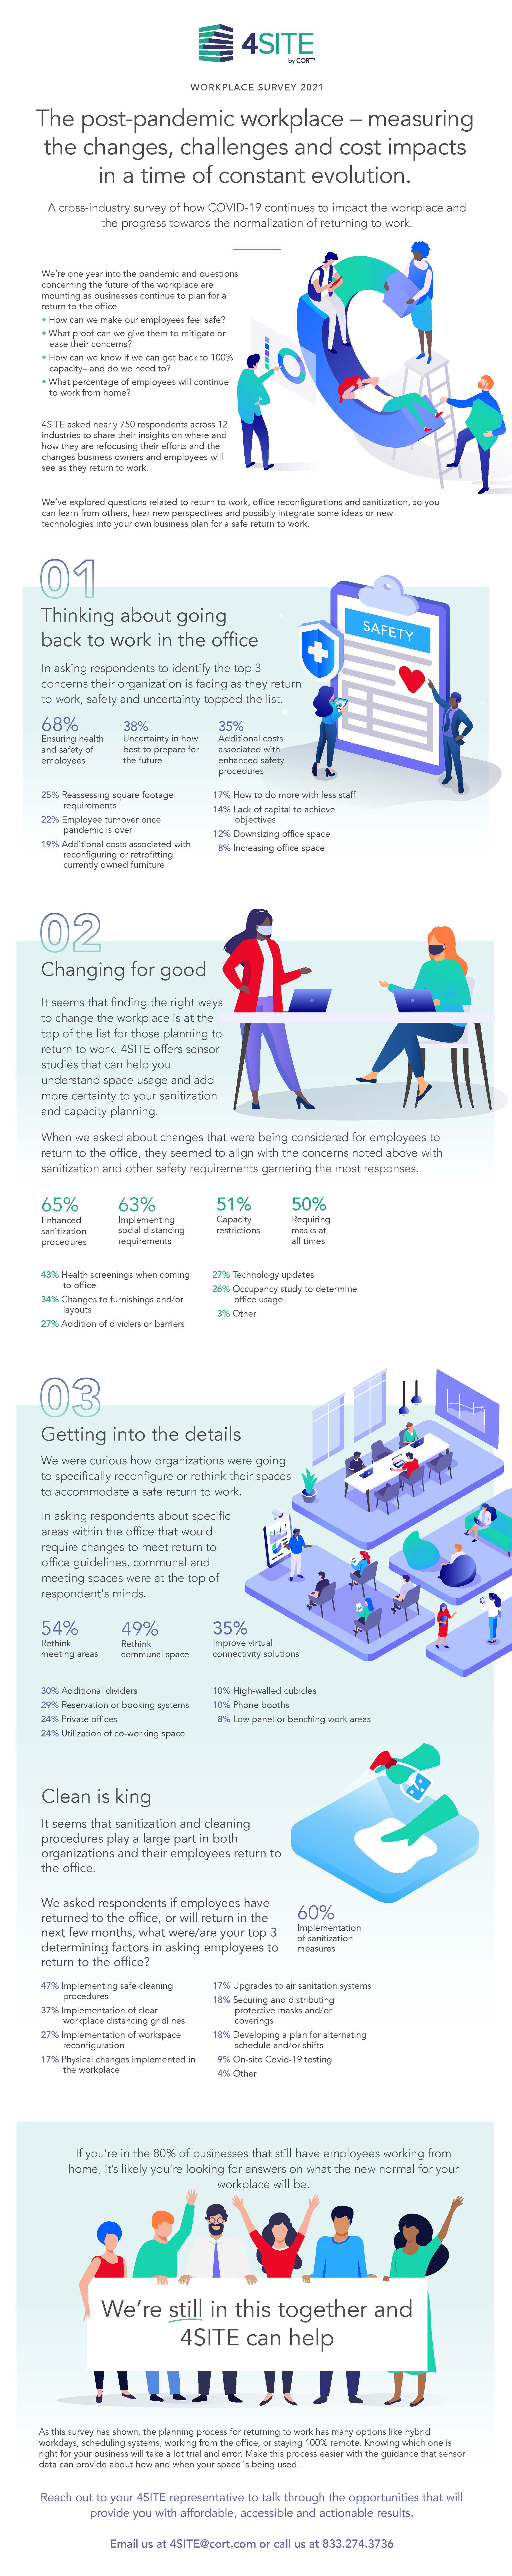 4SITE by CORT Workplace Survey